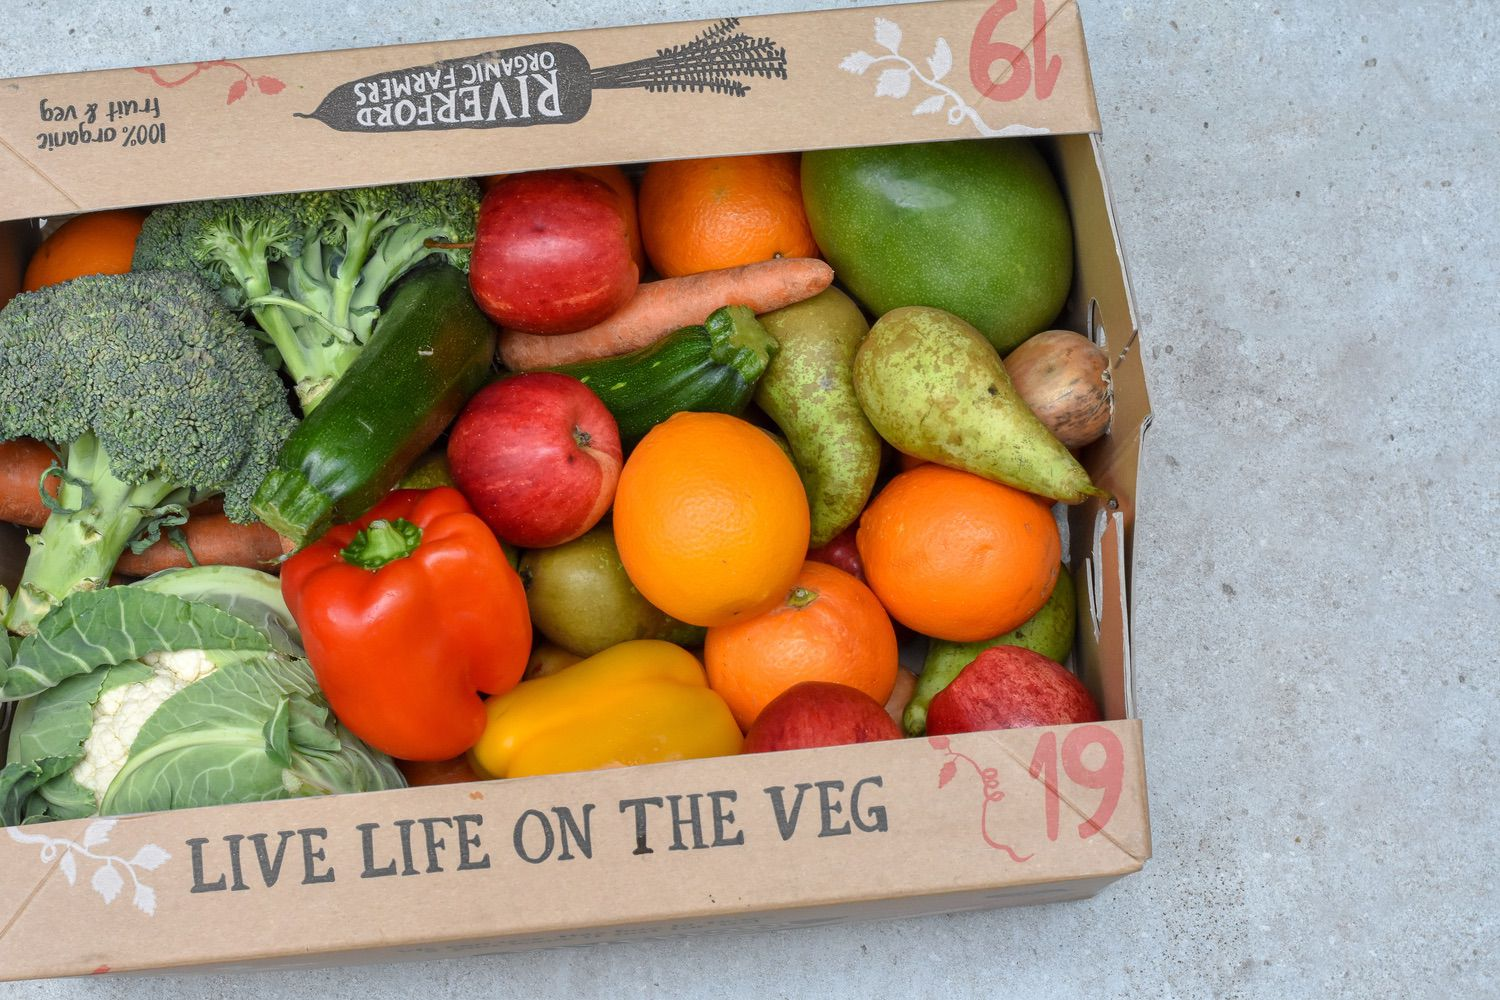 veg delivery boxes - This is one of my top five recommendations.Whilst not 100% plastic-free, all the box delivery schemes are committed to reducing, substituting or eliminating plastic packaging. This simple switch will slash the amount of plastic you get versus a supermarket delivery.It's such an easy win and there's nothing lovelier than a rainbow in a box on your doorstep. Three to check out:Riverford - trailblazers in sustainable organic farming, and environmental campaigning, they claim to reduce like-for-like supermarket plastic by 80% (and they definitely do)Organic Delivery Co - with an option to select an entirely plastic free boxOddbox - these heroes rescue wonky or surplus produce, and give it a good home in your weekly box. This is a great value option if you aren't fussy about guaranteeing organic produce.